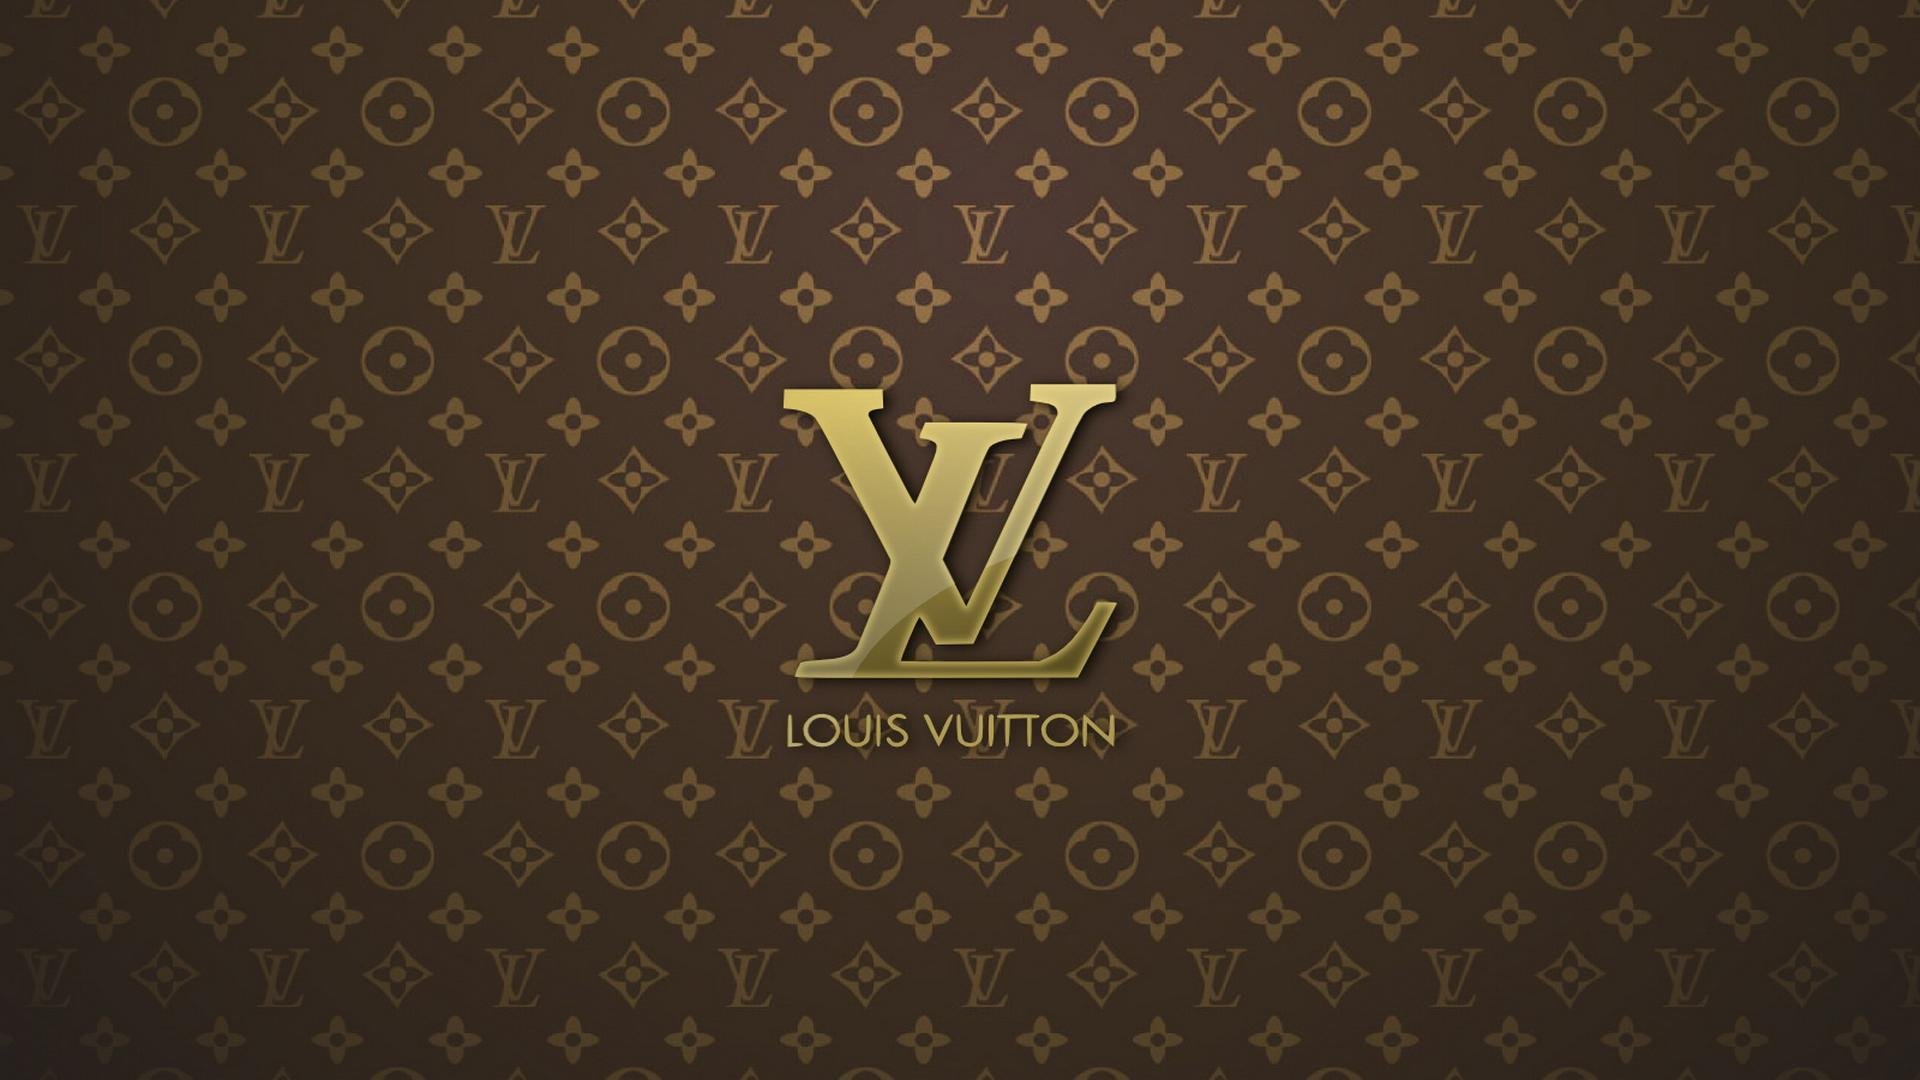 Inspirations from Louis Vuitton top italian interior designers Top Italian Interior Designers You Need To Know Inspirations from Louis Vuitton cover top italian interior designers Top Italian Interior Designers You Need To Know Inspirations from Louis Vuitton cover